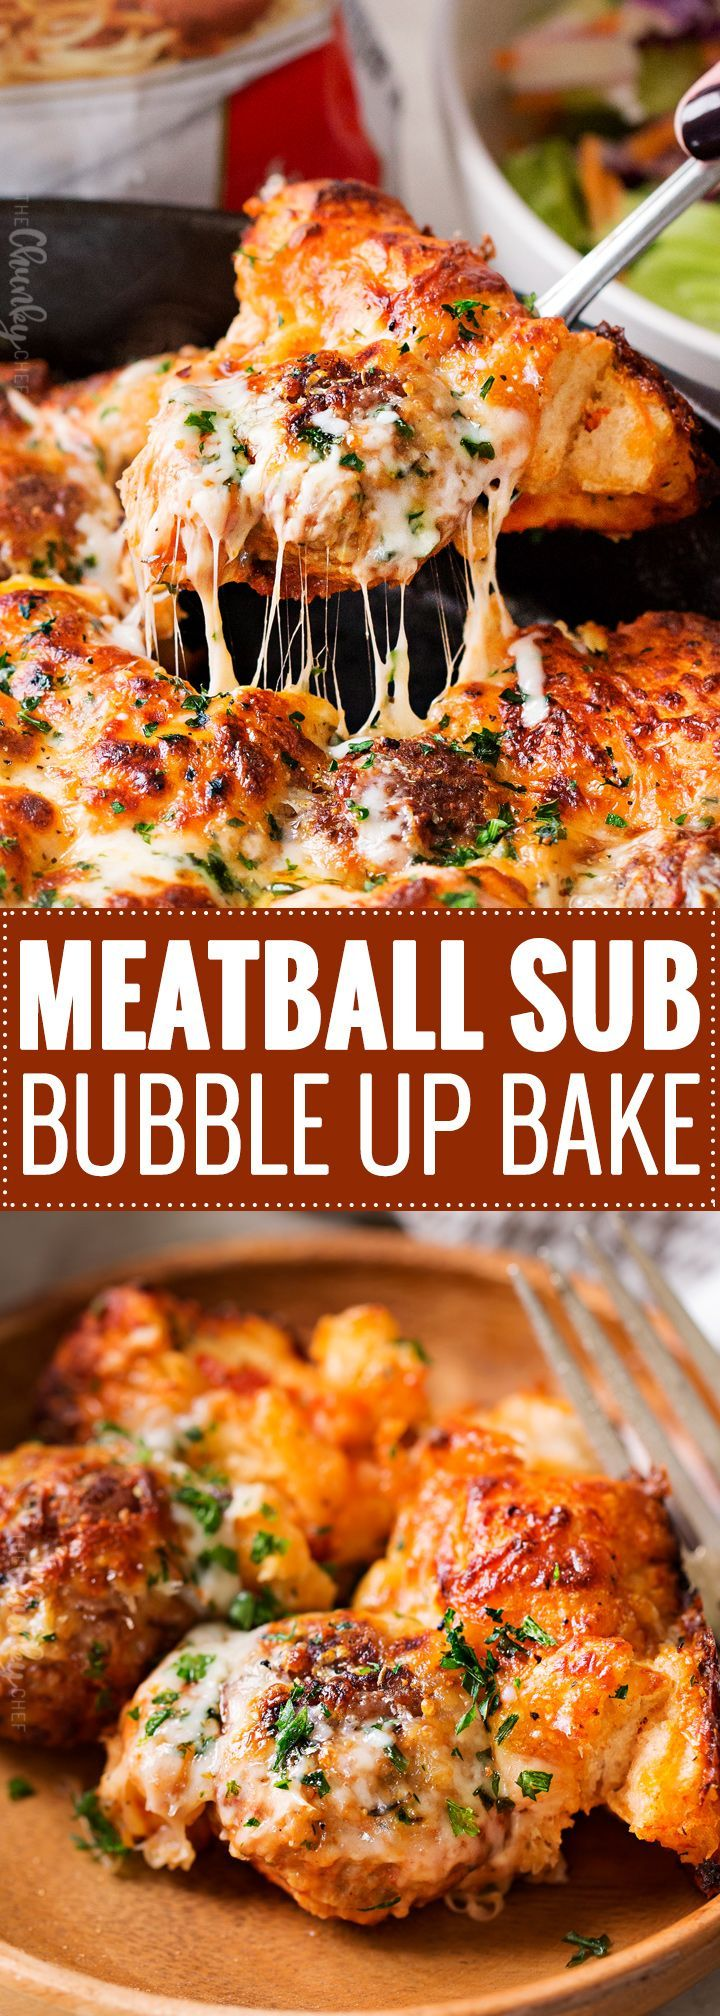 Meatball Sub Bubble Up Bake | This bubble up bake tastes just like a great meatball sub and a casserole, made in one pan!  Sure to be a weeknight favorite with both kids and adults!